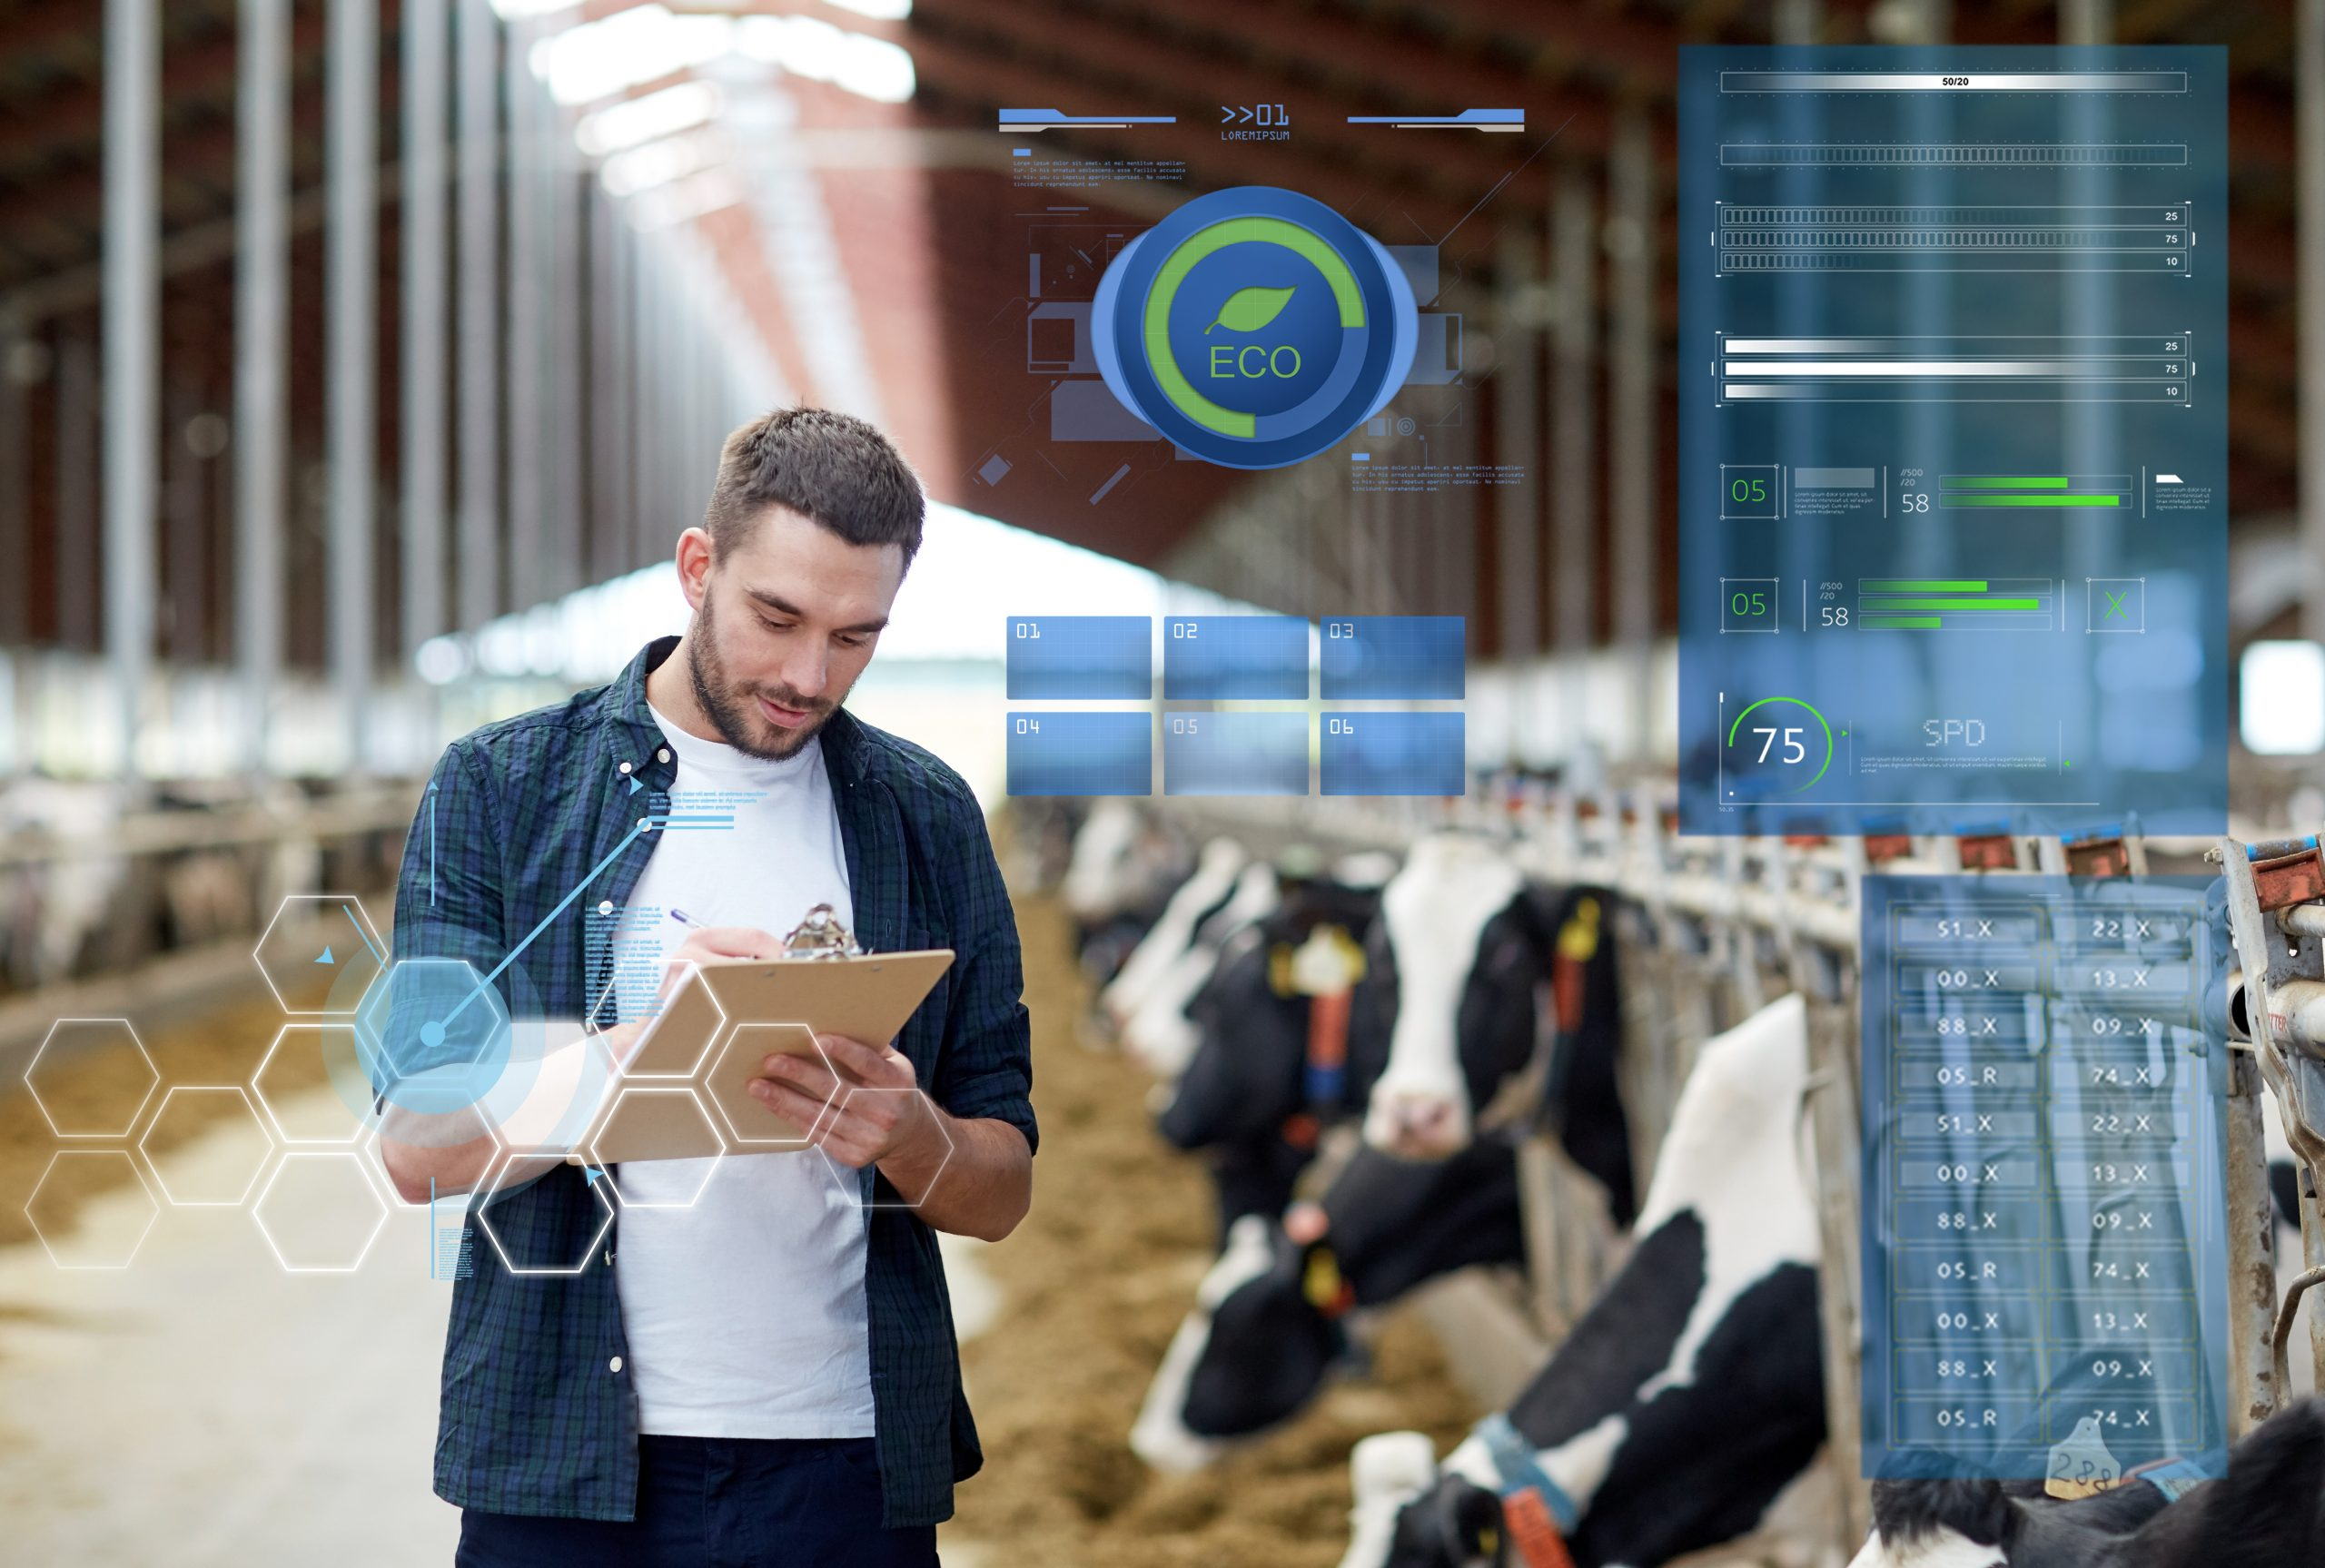 Farmer looking down at a clipboard while standing in a cattle shed, while utilising data analytics to enhance animal management